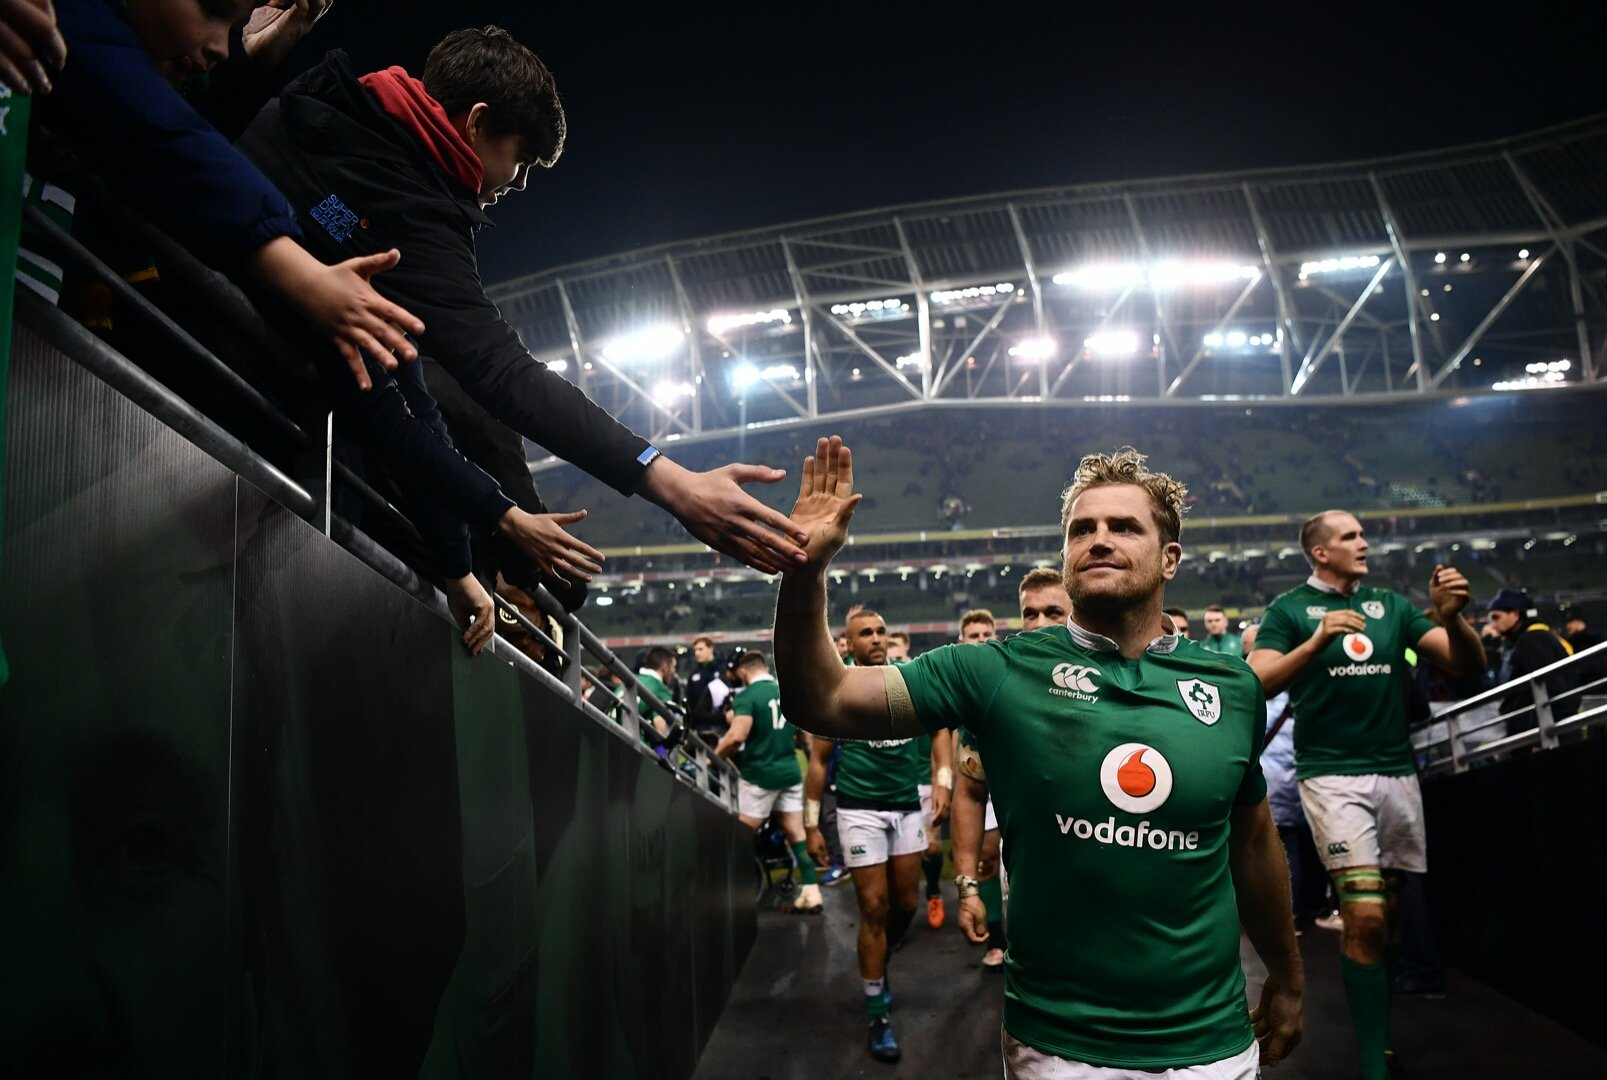 'You wanted to make the Aviva its own kind of futuristic fortress, a place to feel proud in'